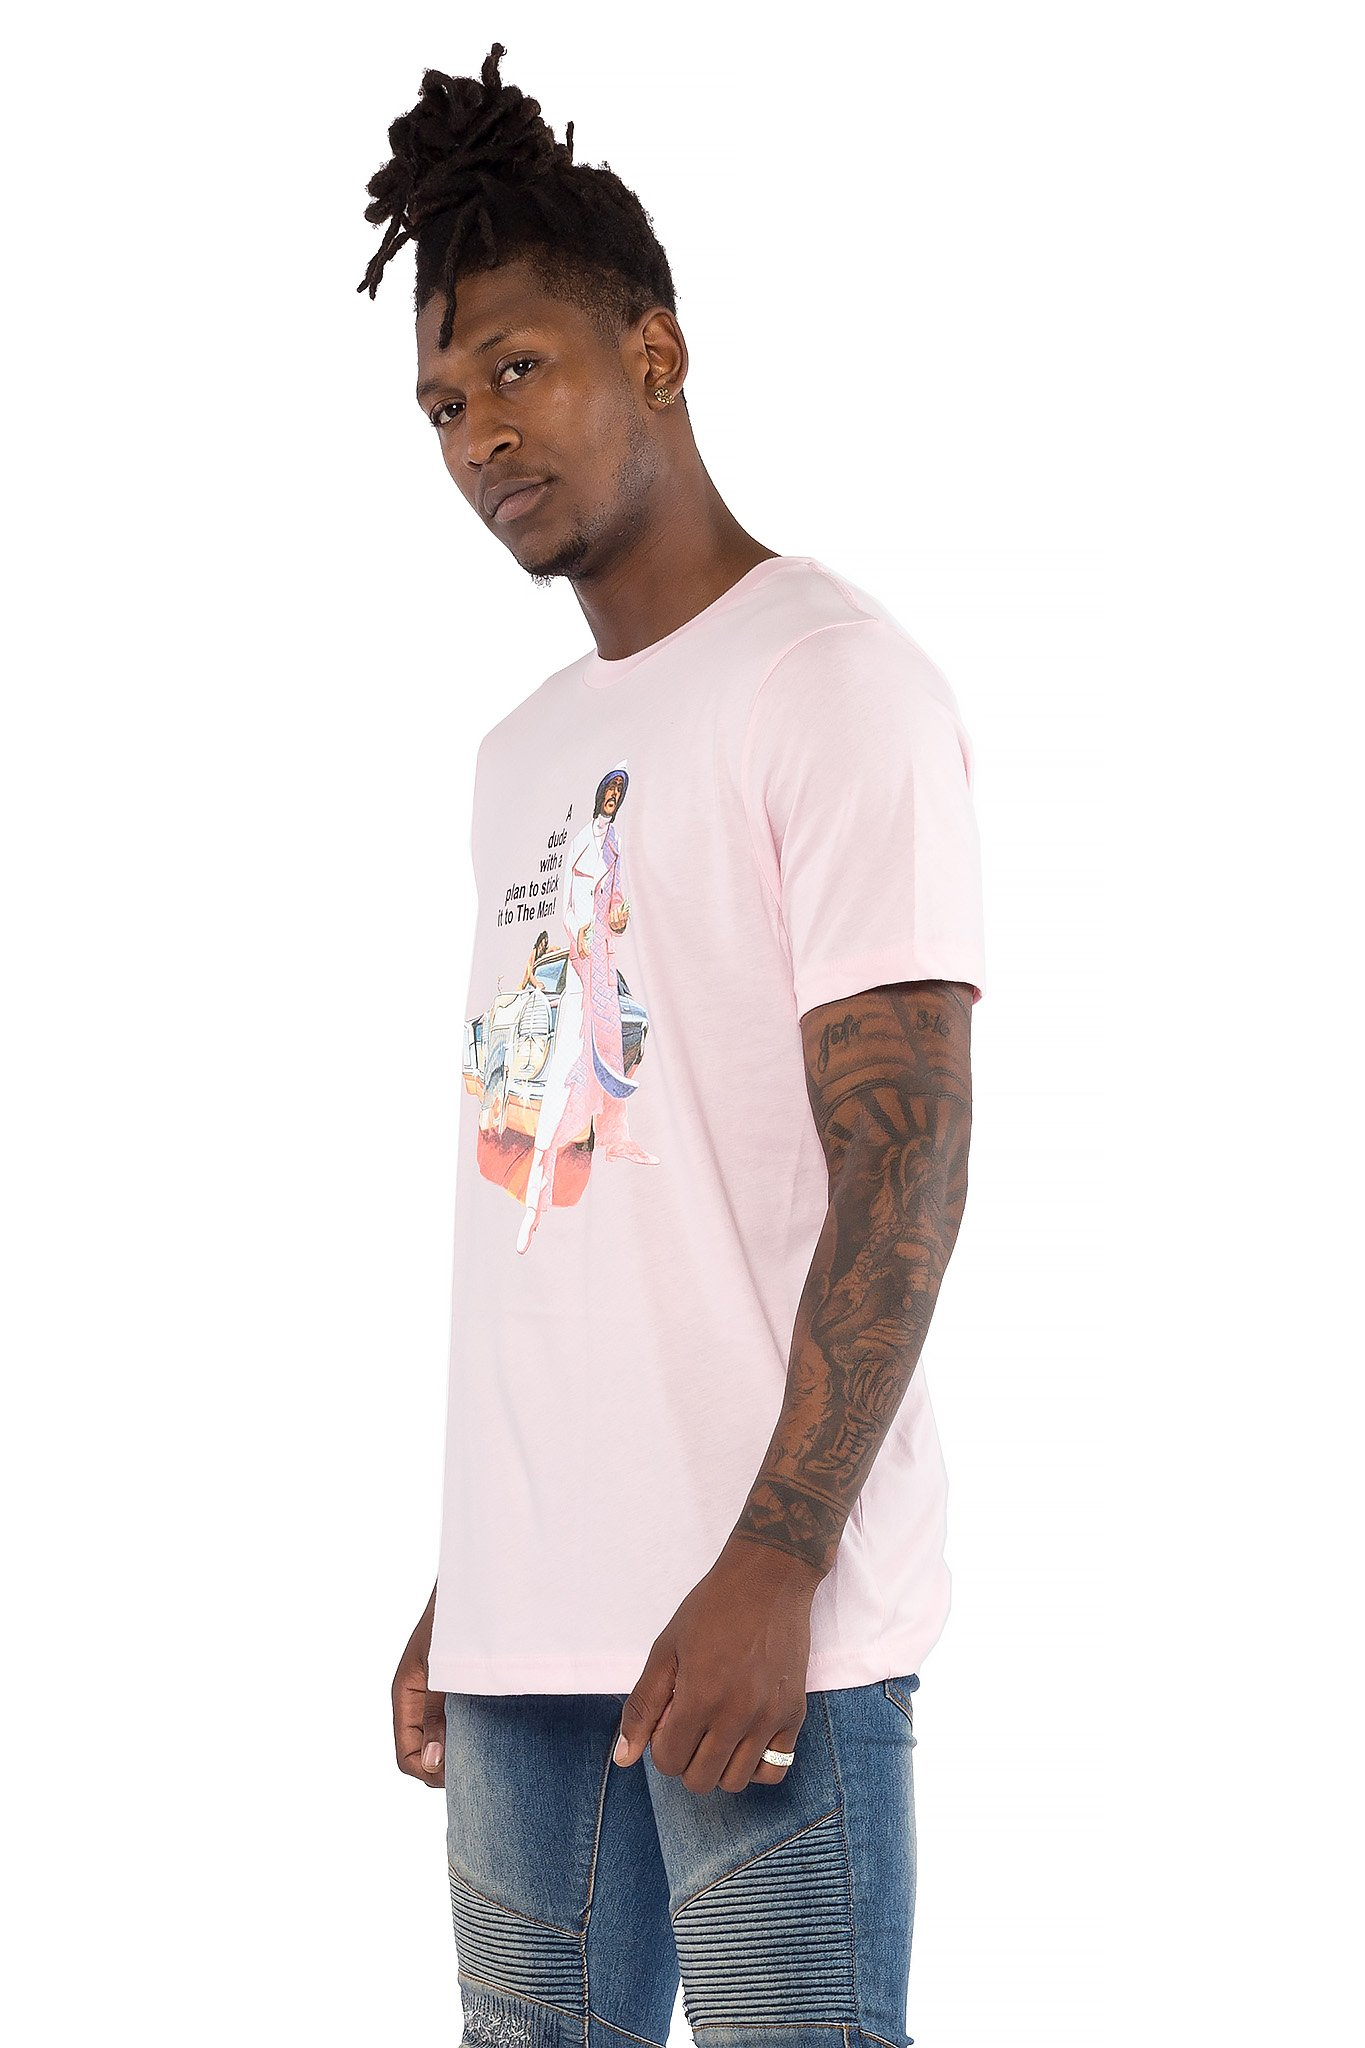 Cross_Colours_Street_Culture_Superfly_TShirt__Pink